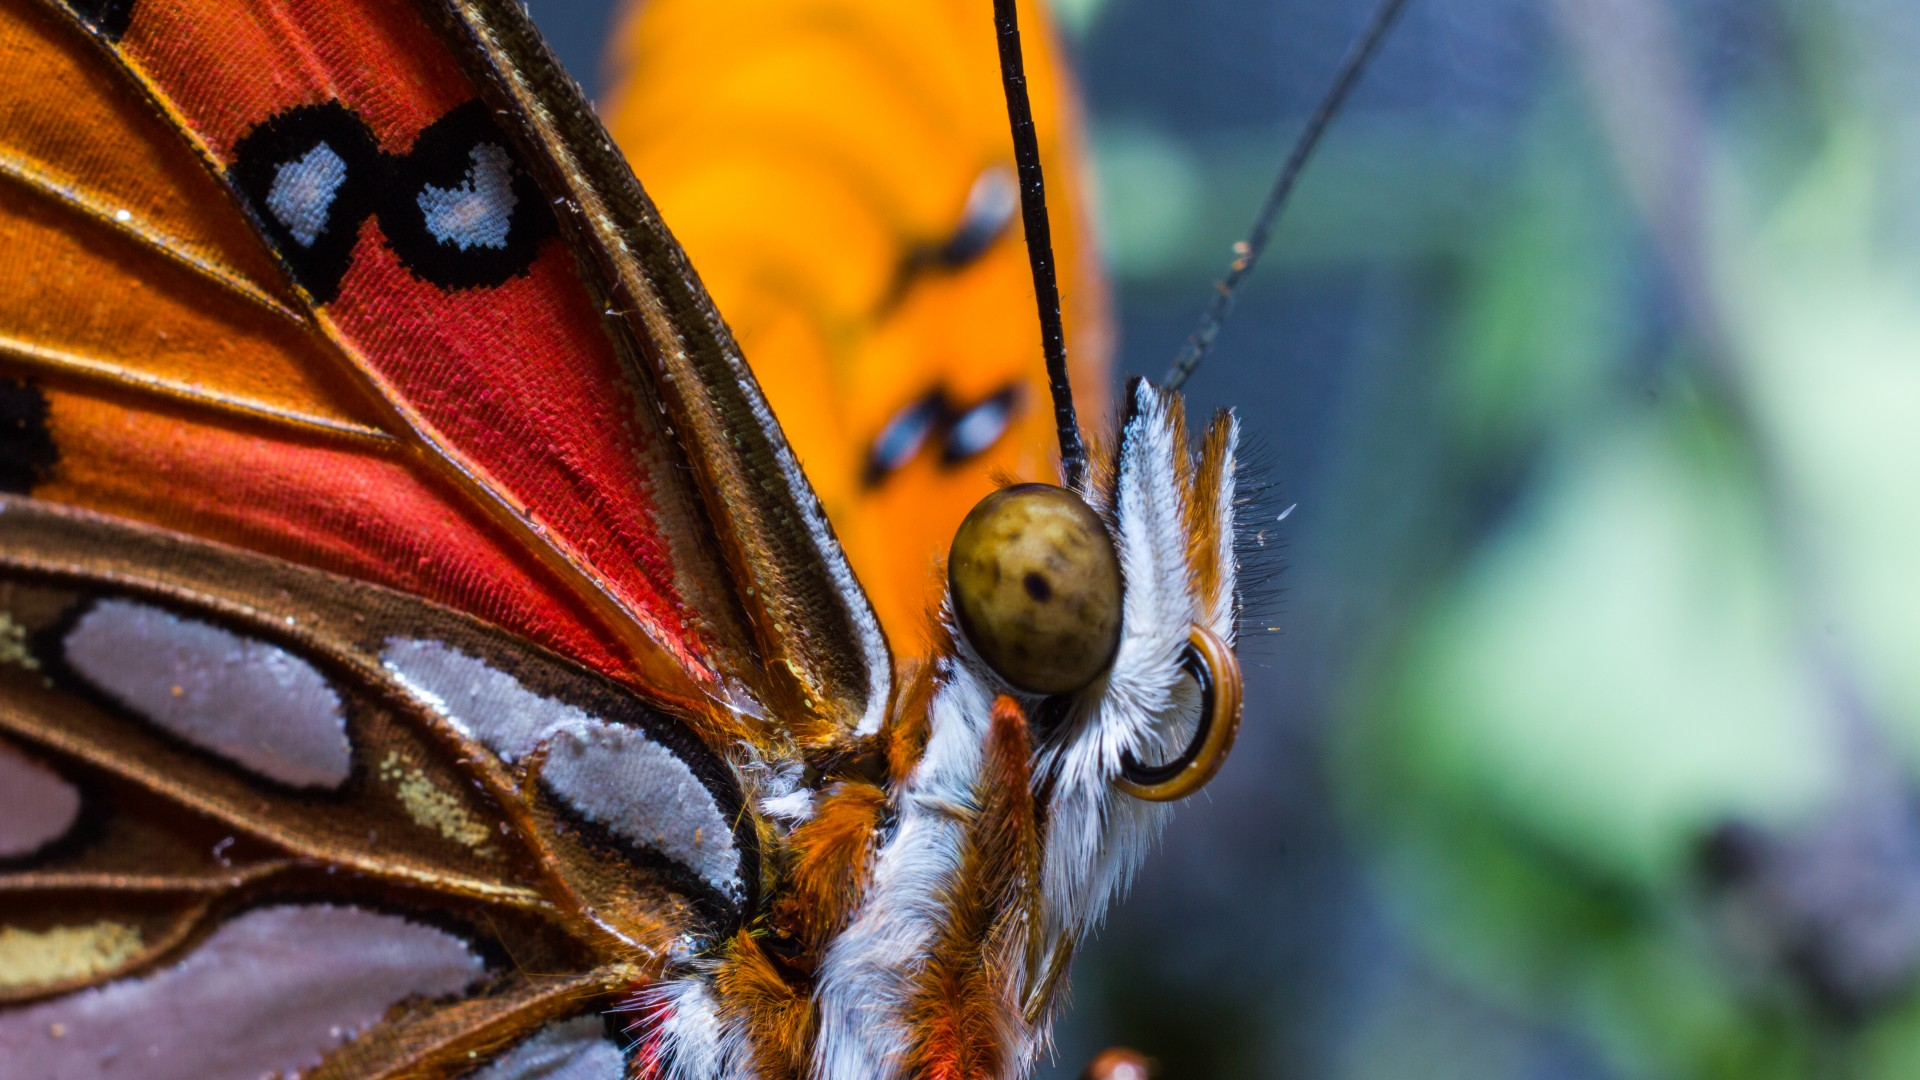 Butterfly, colorful, macro, insects, red, wings, eyes (horizontal)